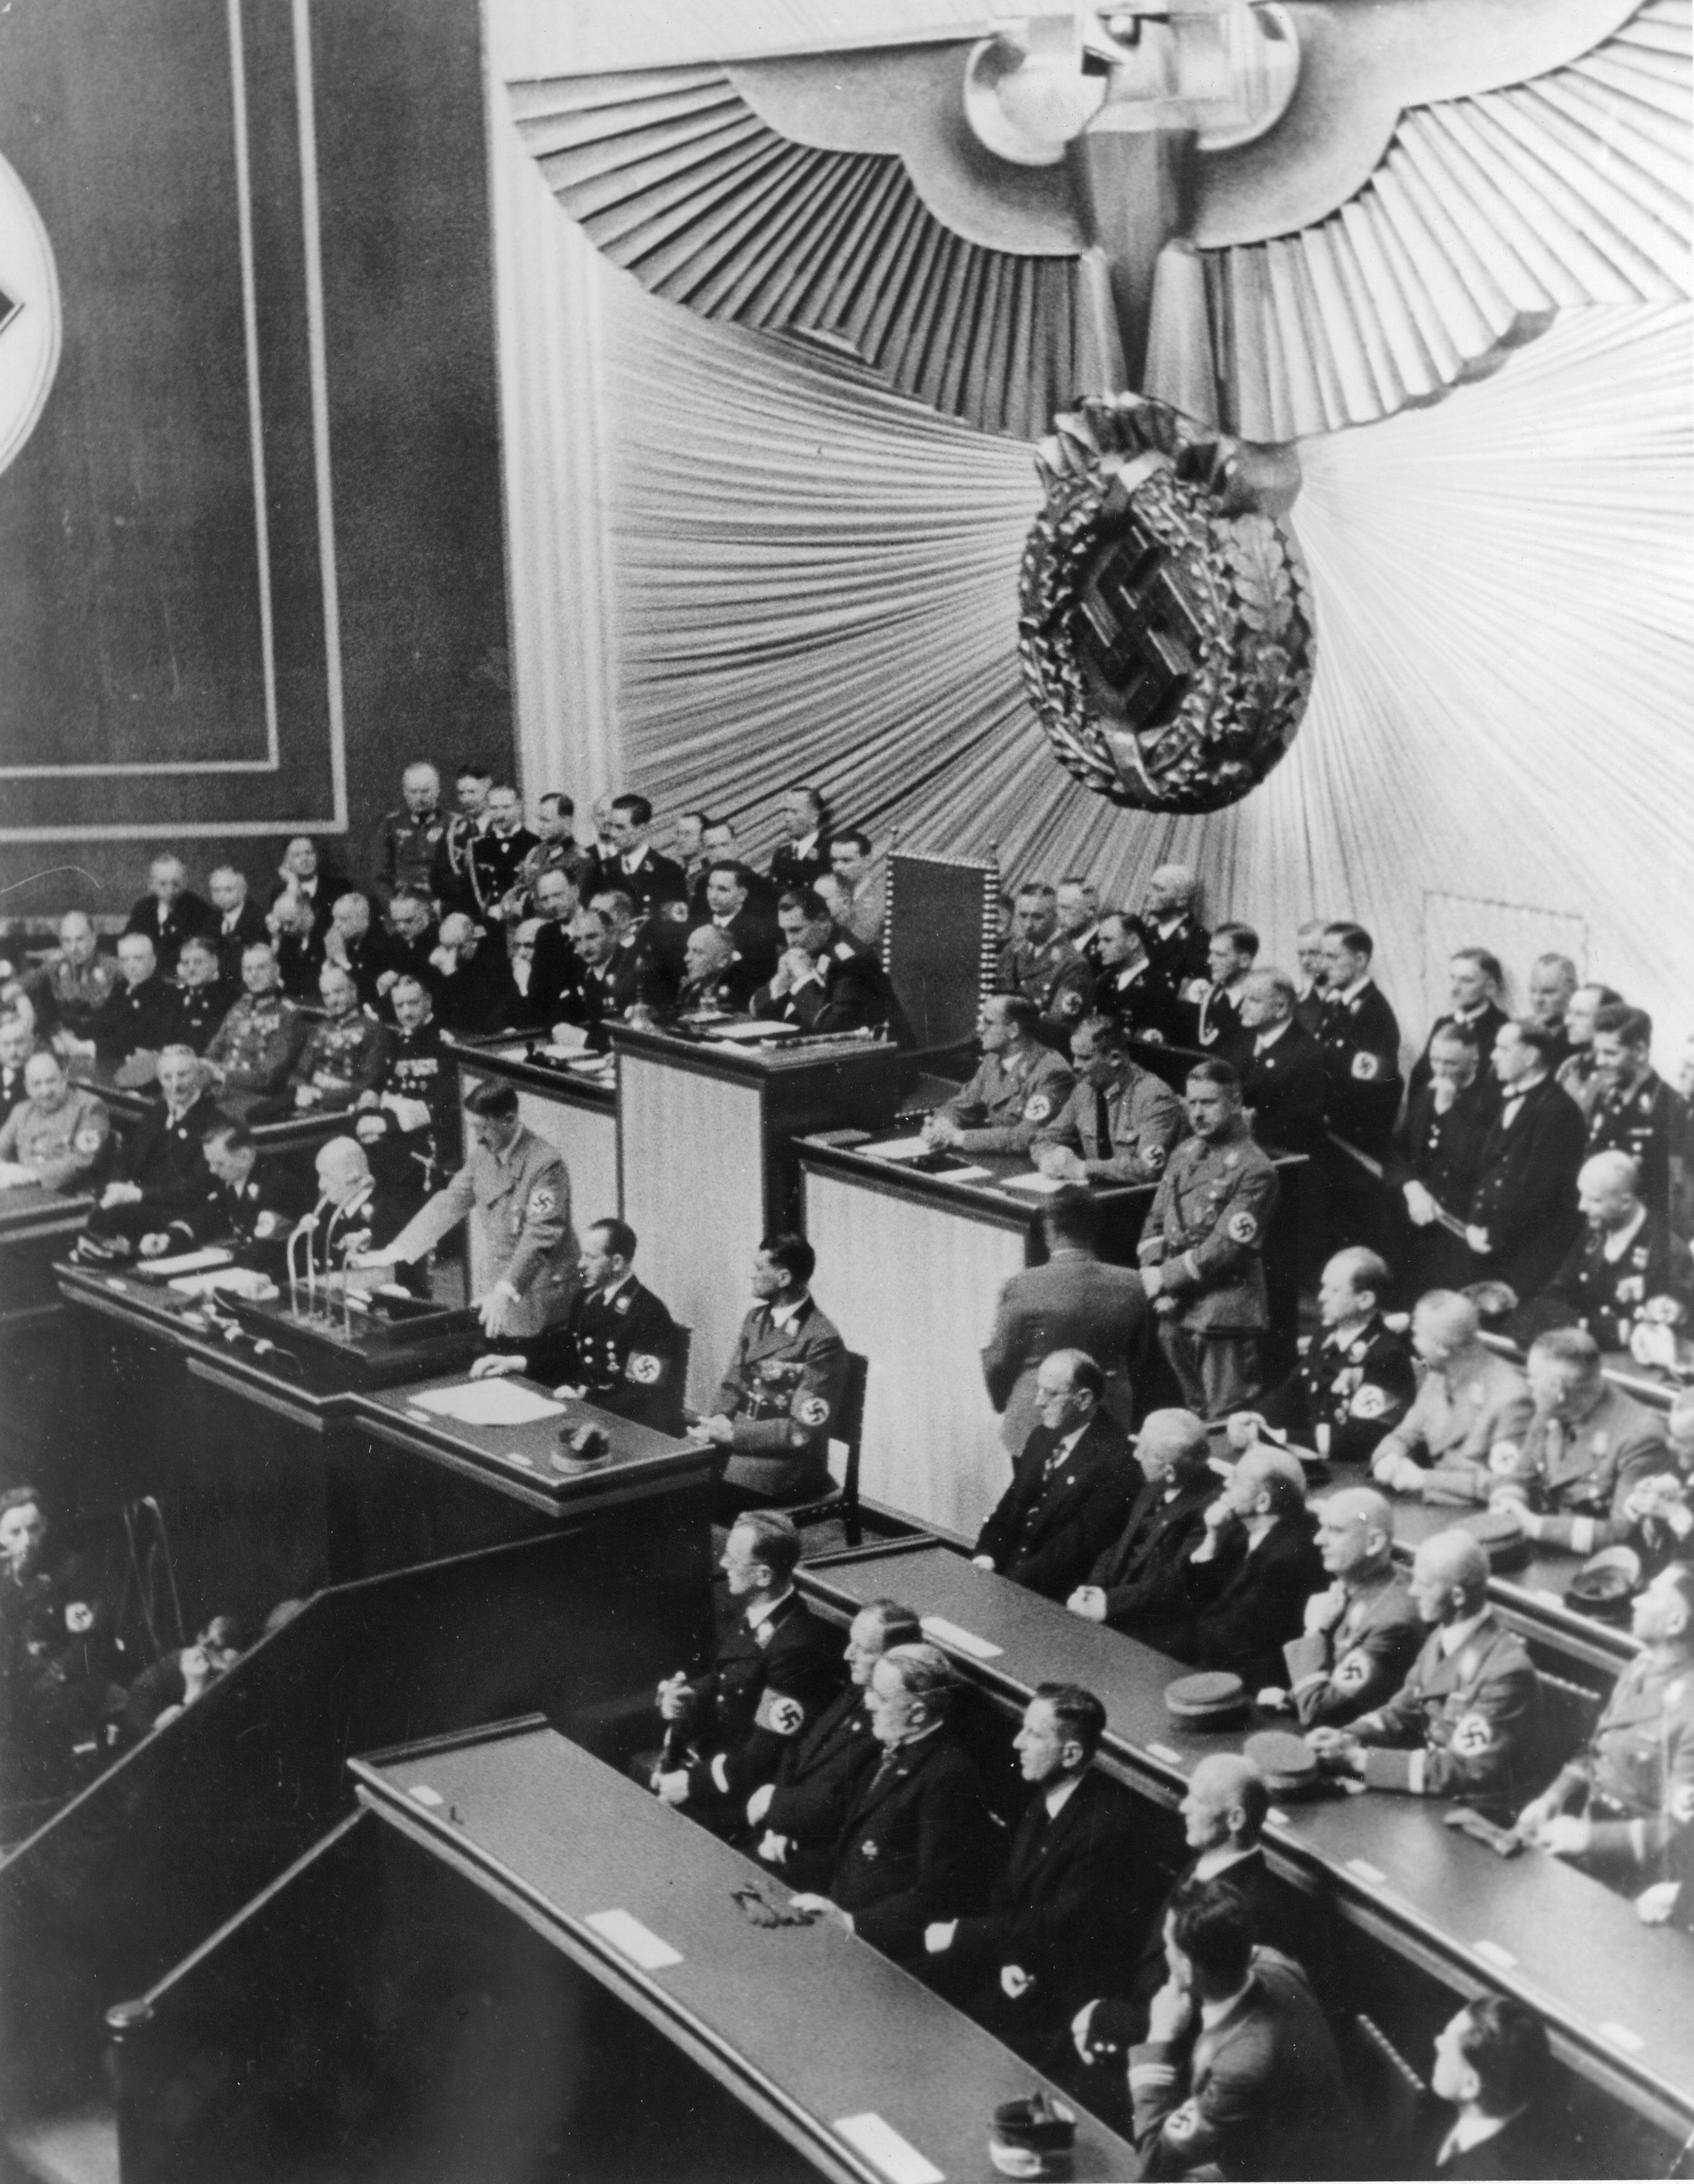 Hitler addresses the Reichstag in Berlin in 1938. Anton Reinthaller is in the first row, fifth from left, according to a